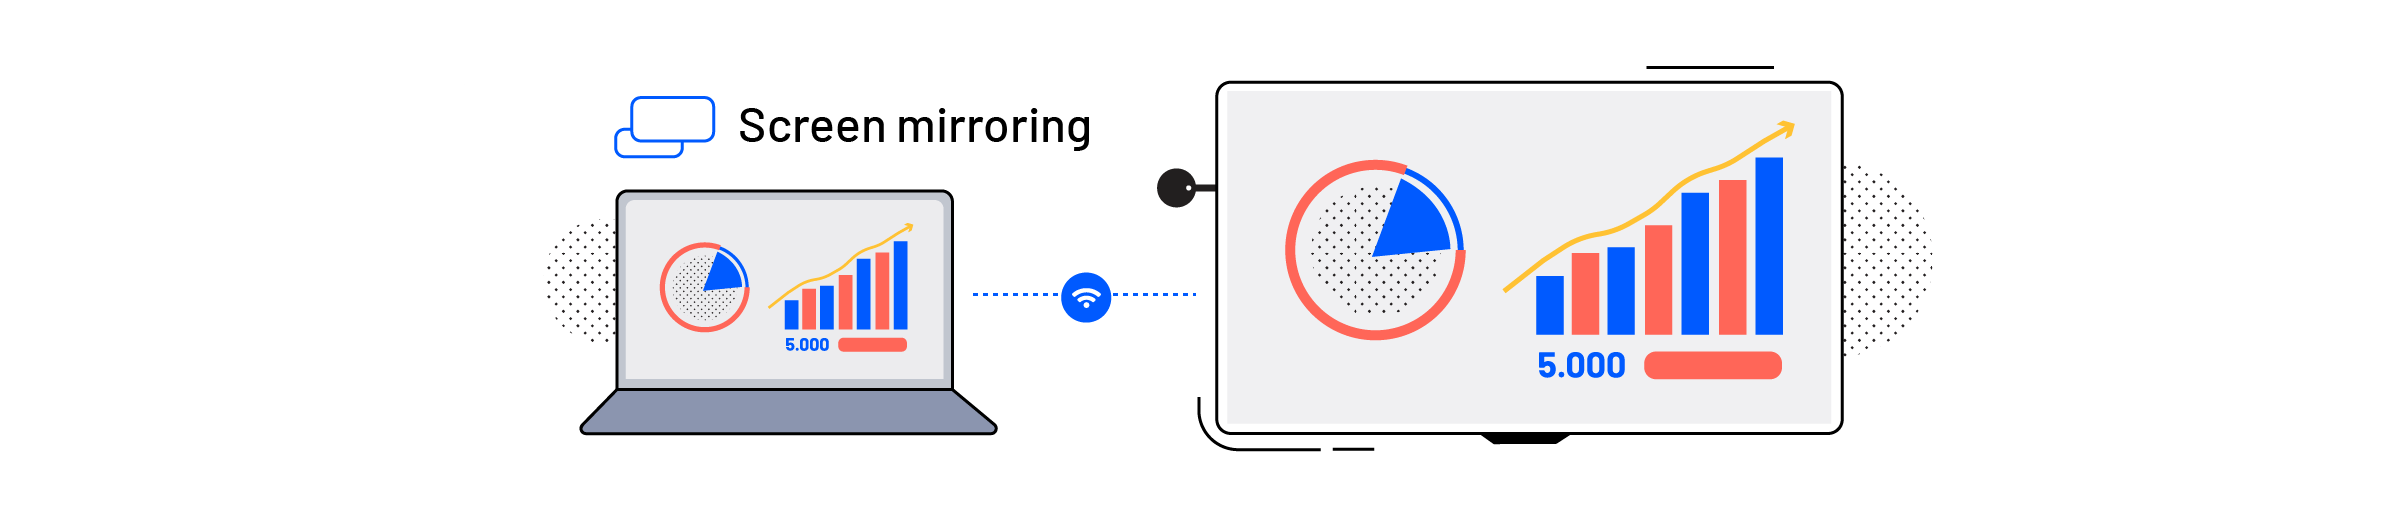 A laptop screen mirroring to a screen using an Airtame device for screen sharing